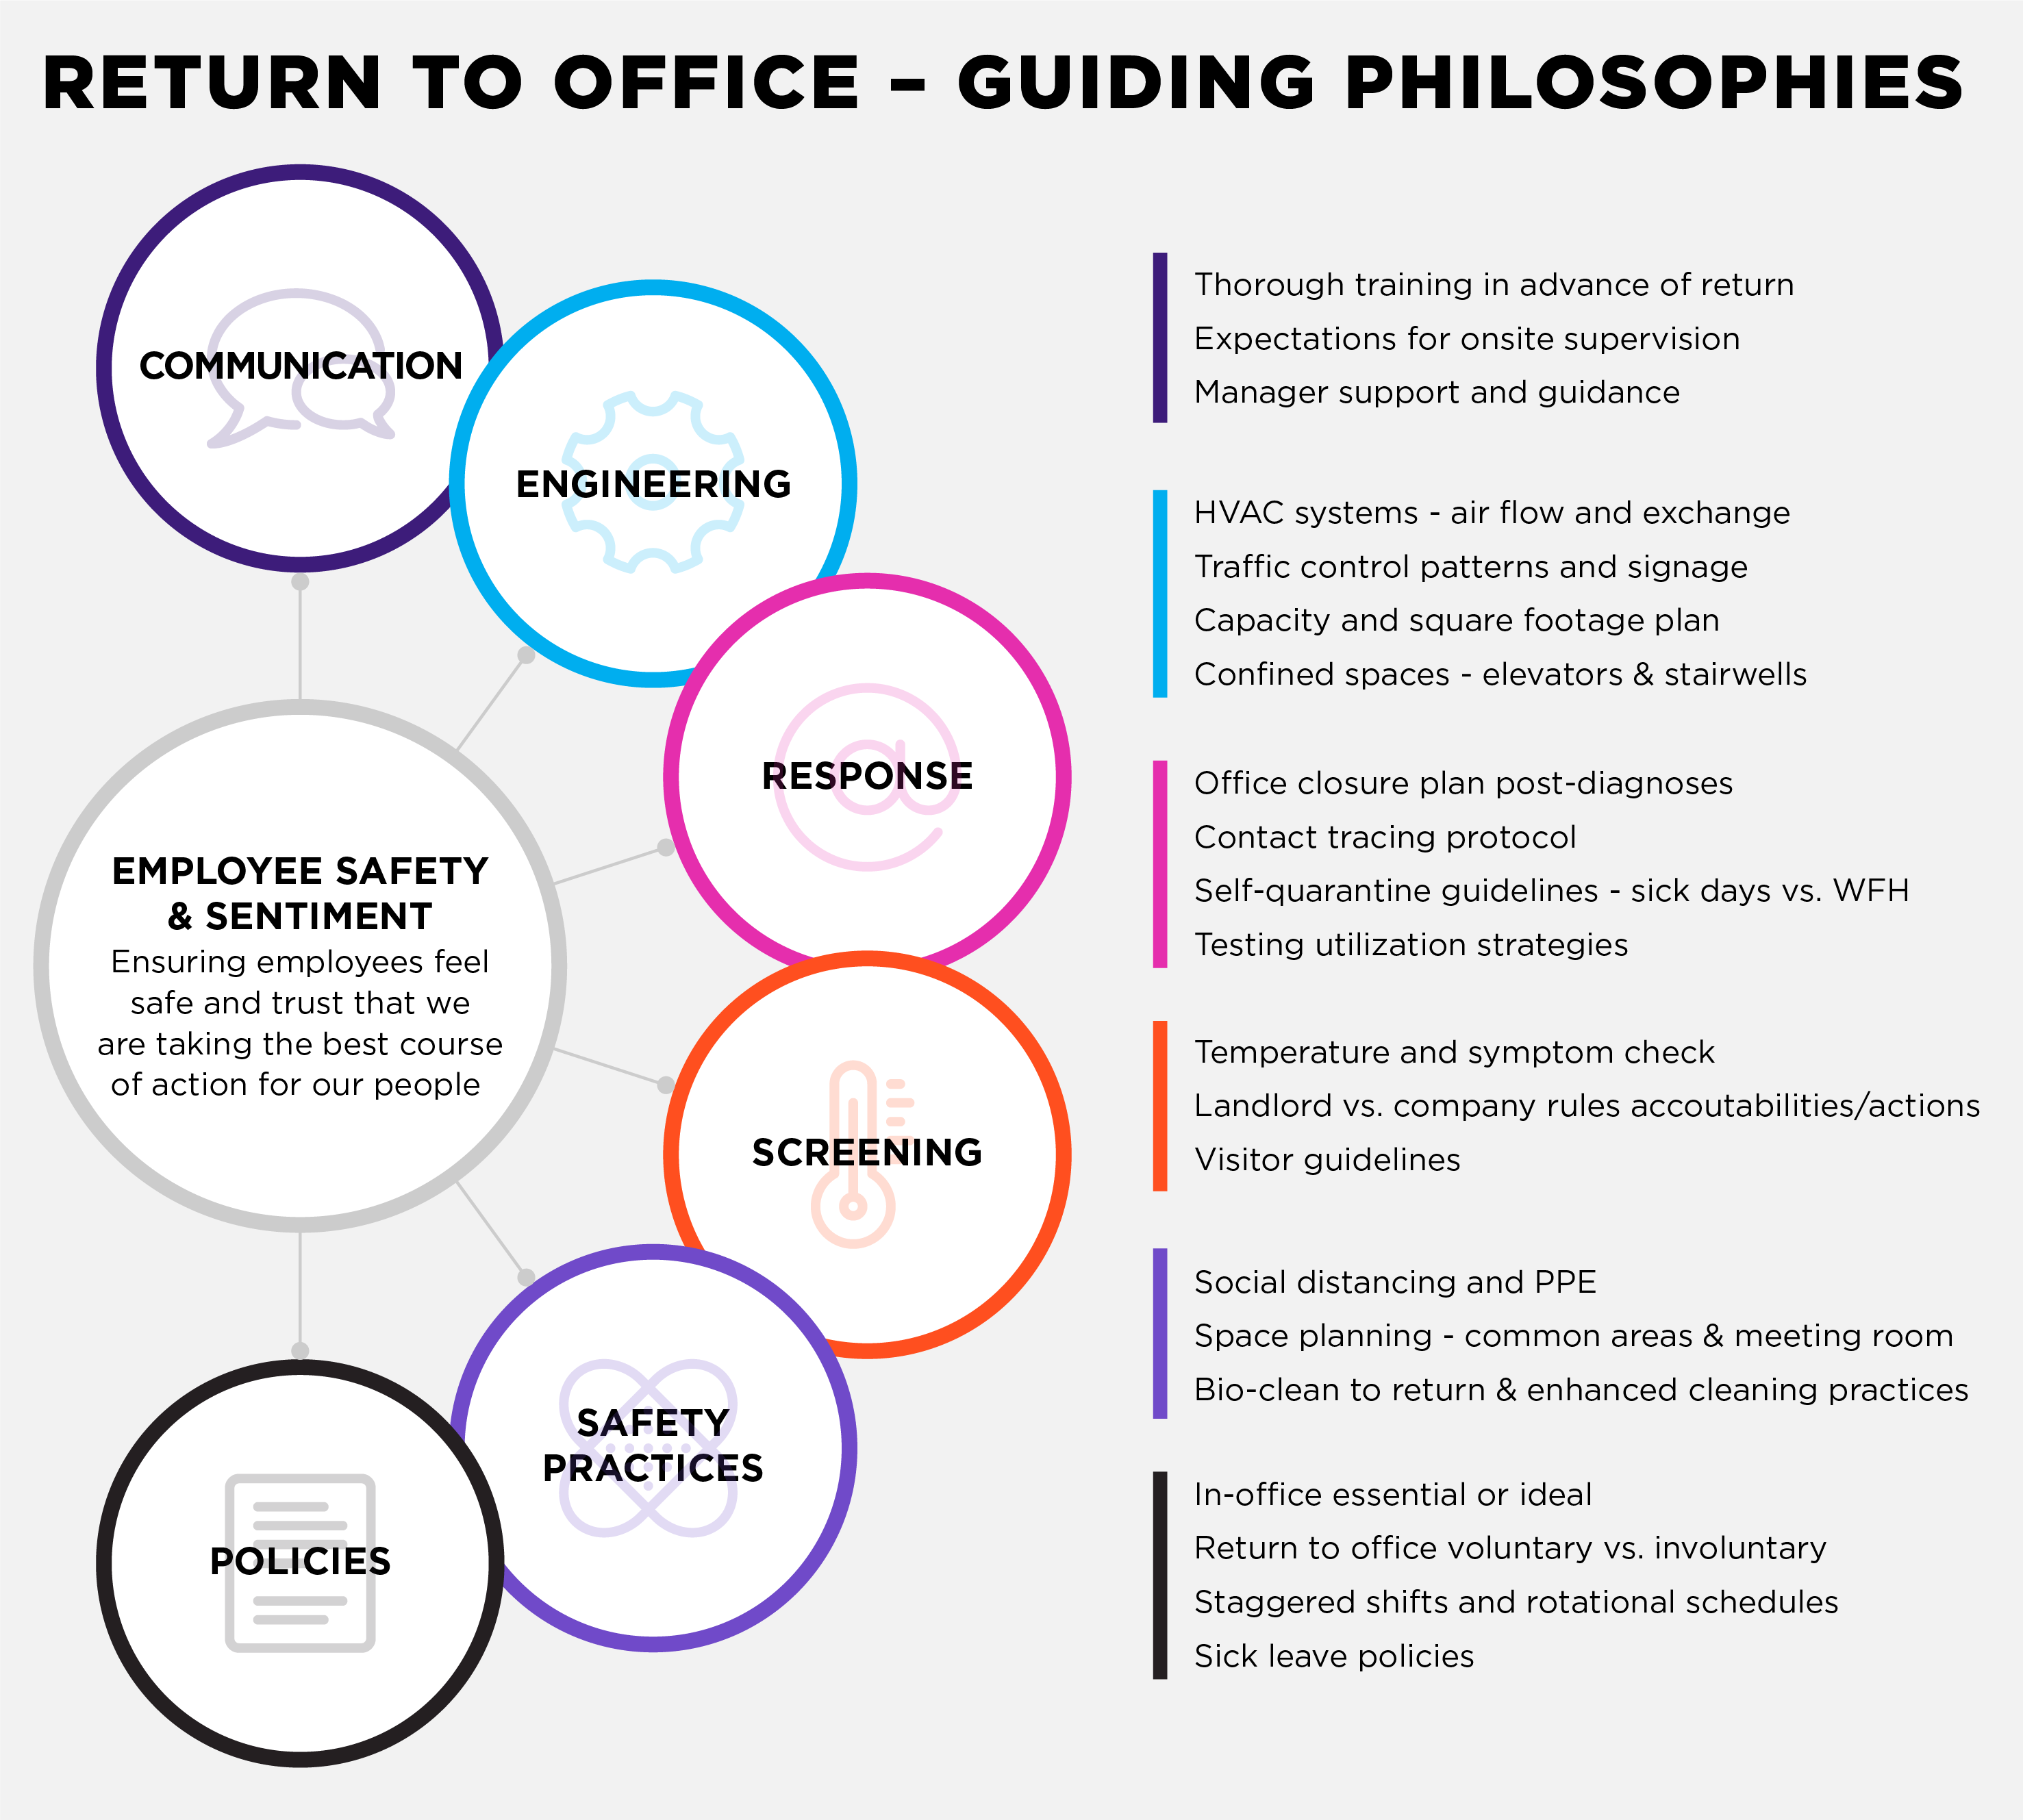 Infographic: Guiding Philosophies for Return to Office Planning